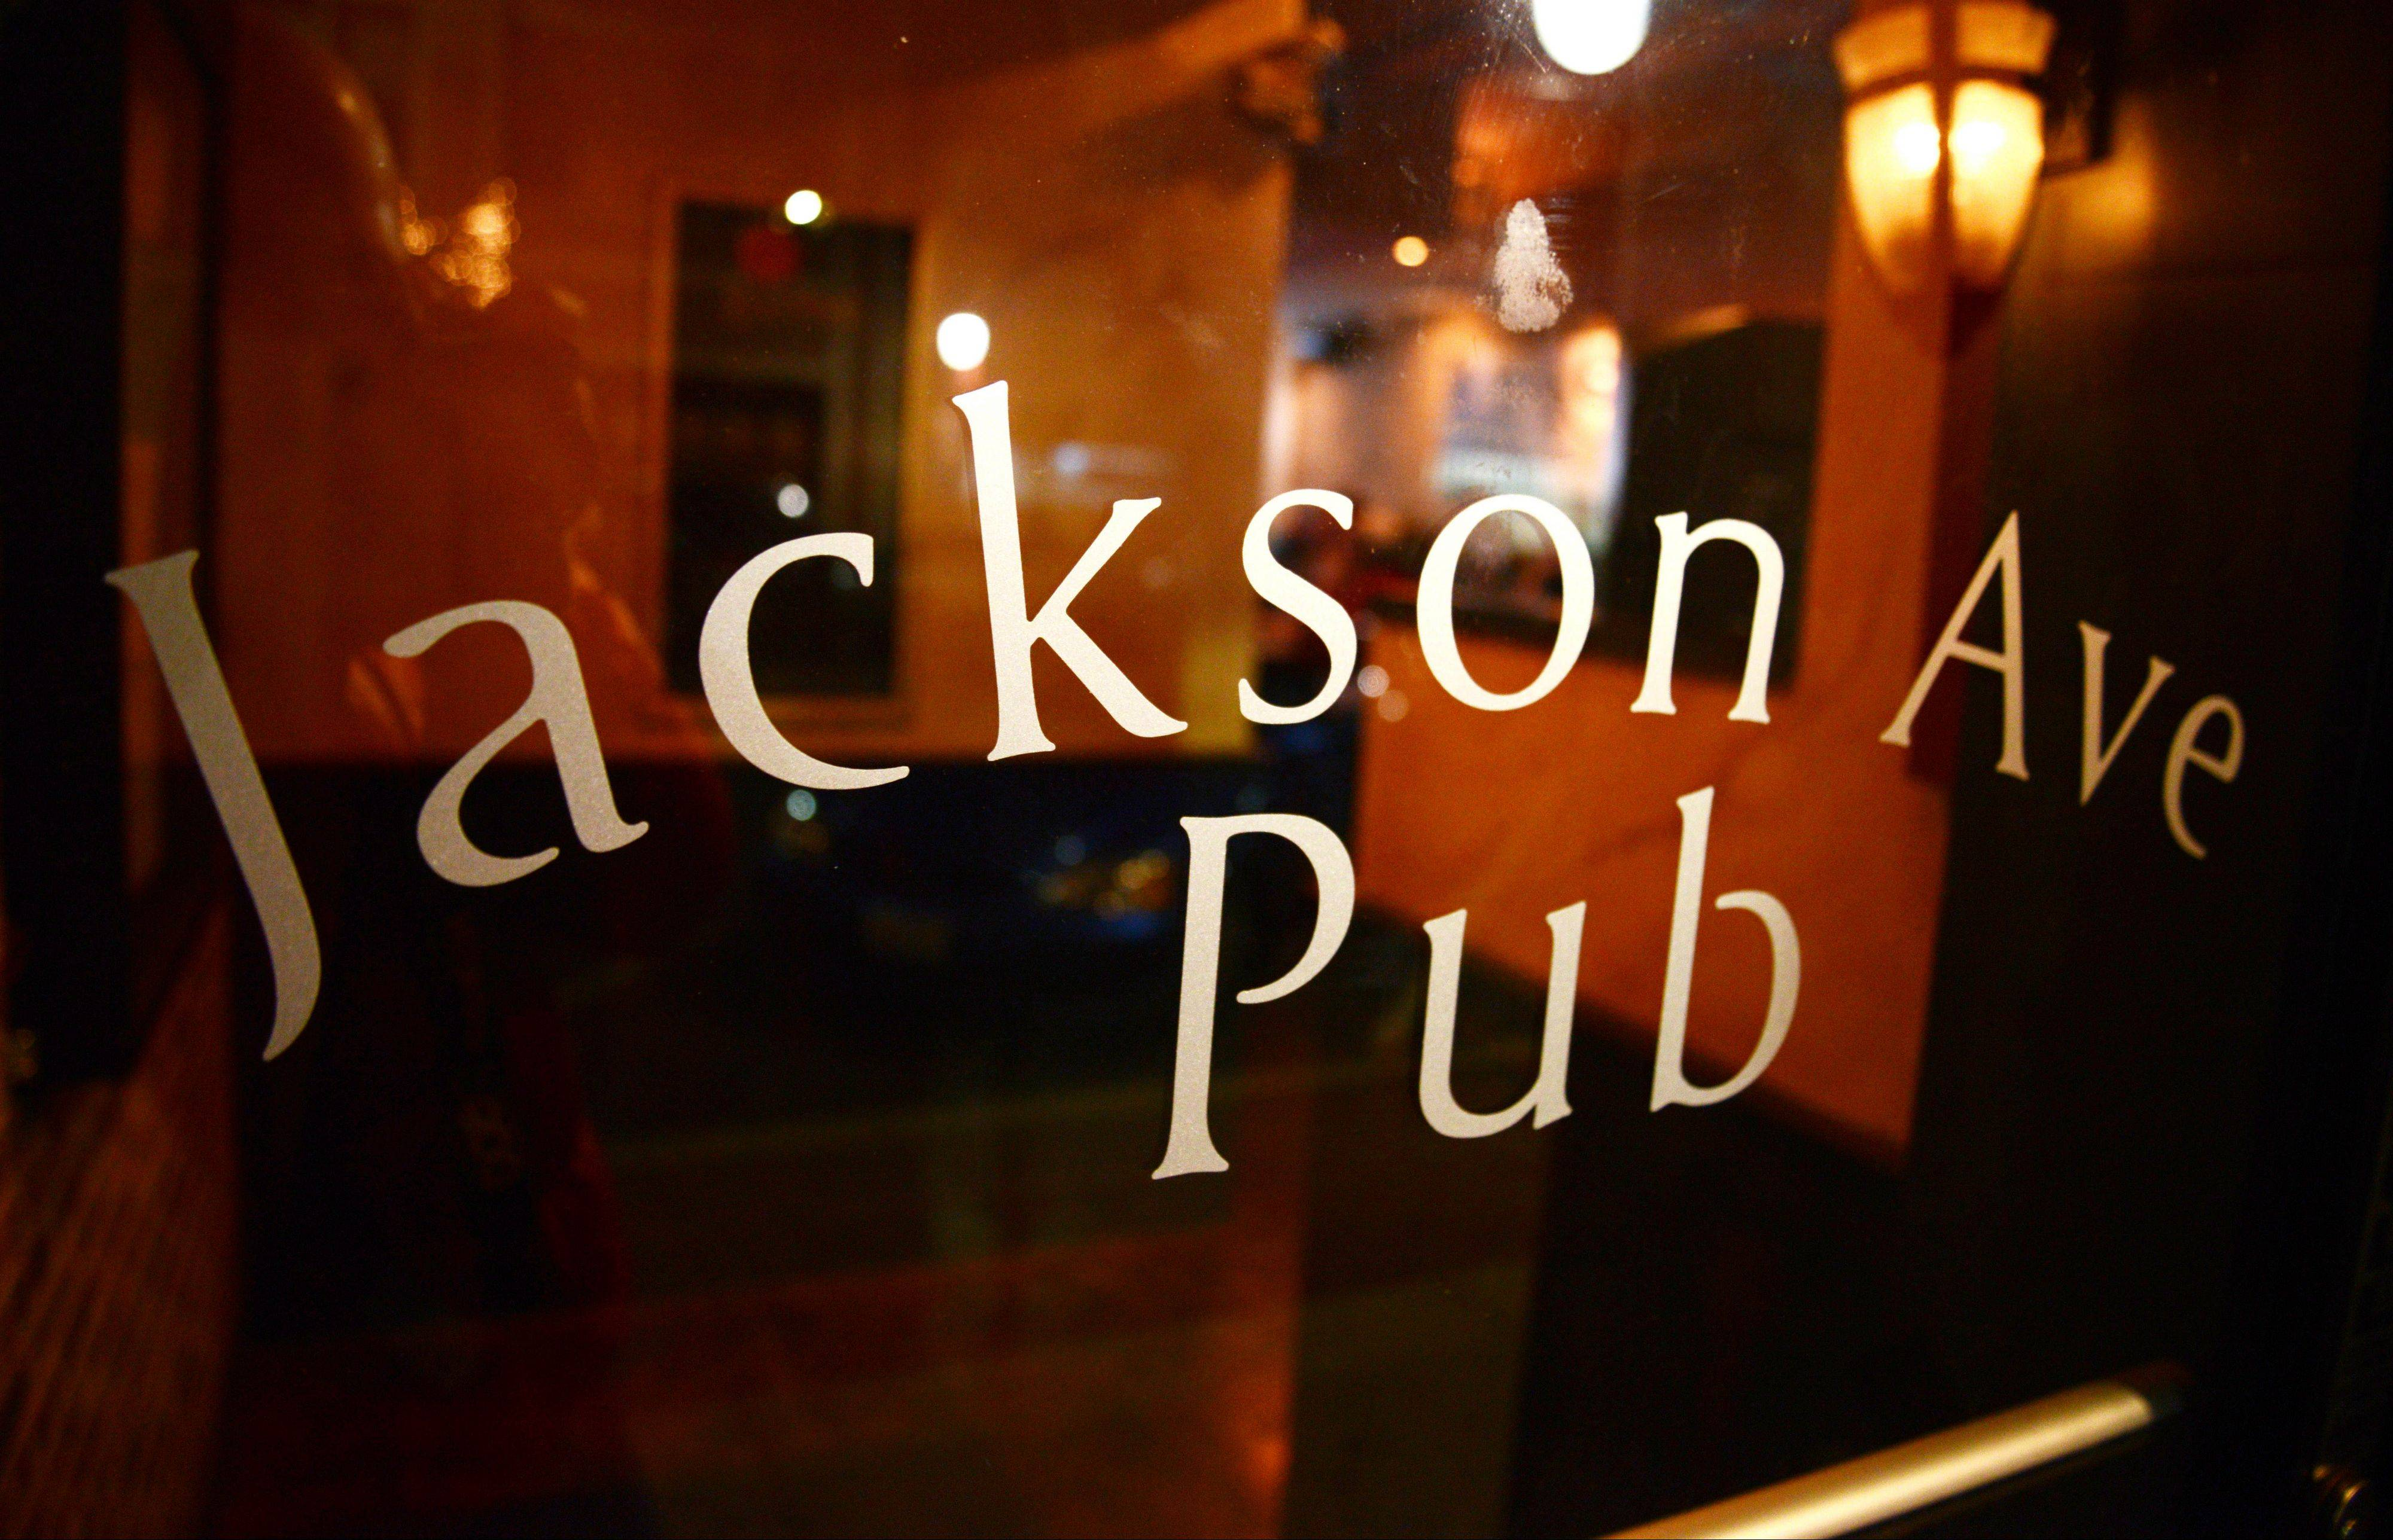 Jackson Ave. Pub caters to families looking for dinner and singles mingling over drinks.